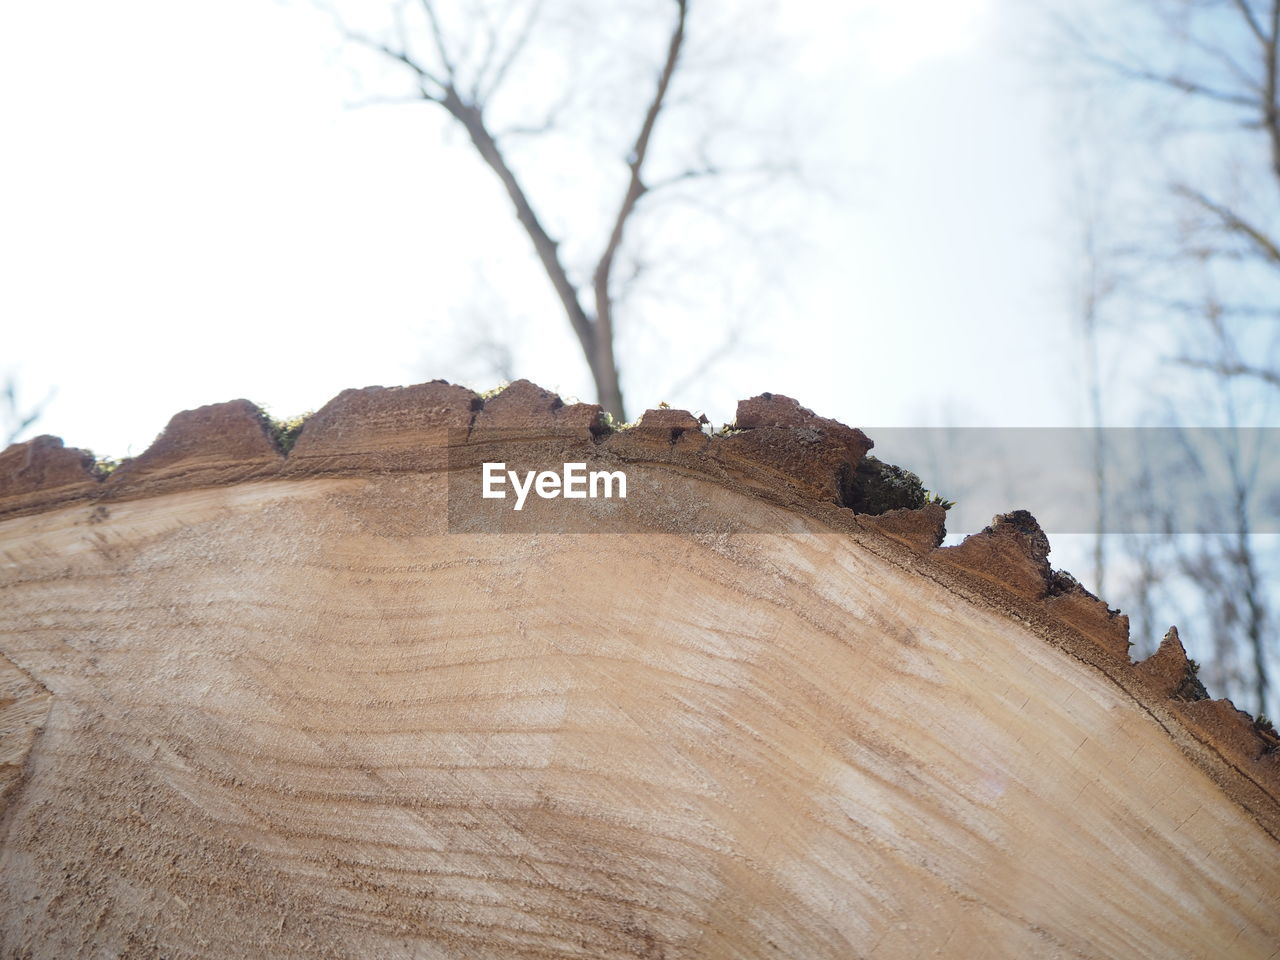 tree, wood - material, sky, nature, day, no people, plant, focus on foreground, close-up, outdoors, branch, bare tree, textured, tree trunk, beauty in nature, trunk, wood, low angle view, tranquility, land, bark